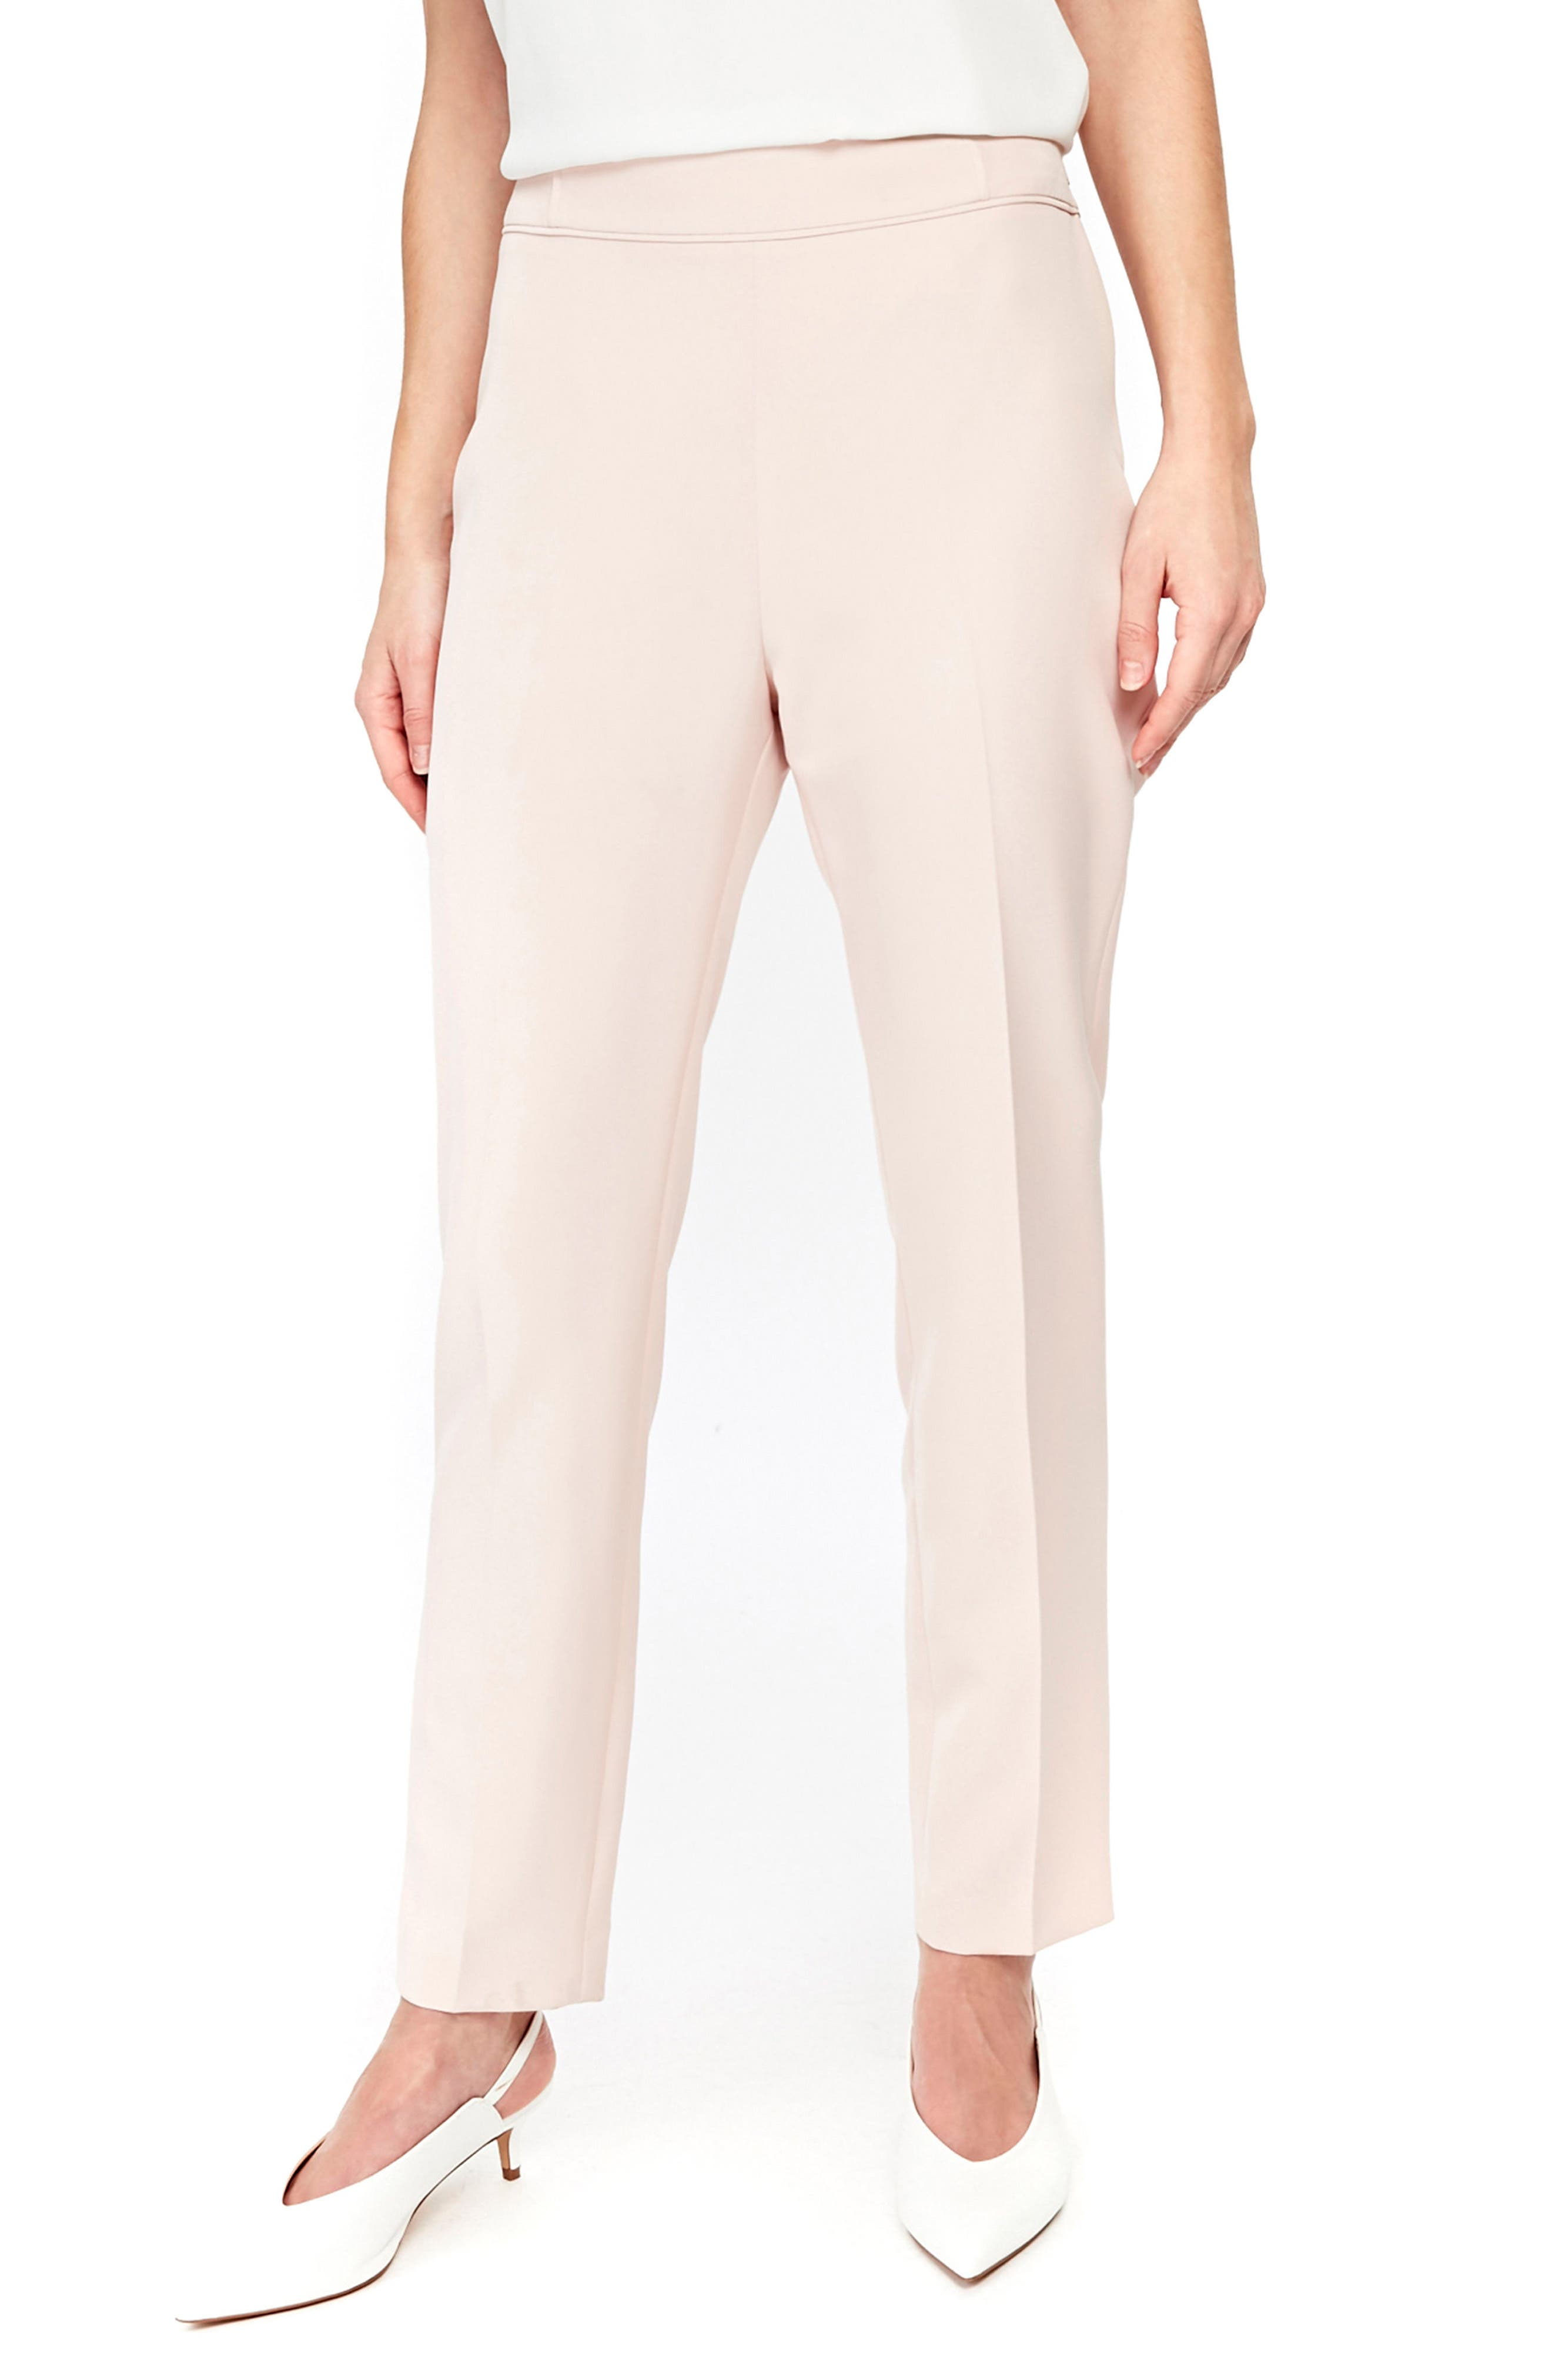 Sienna Trousers,                         Main,                         color, Blush